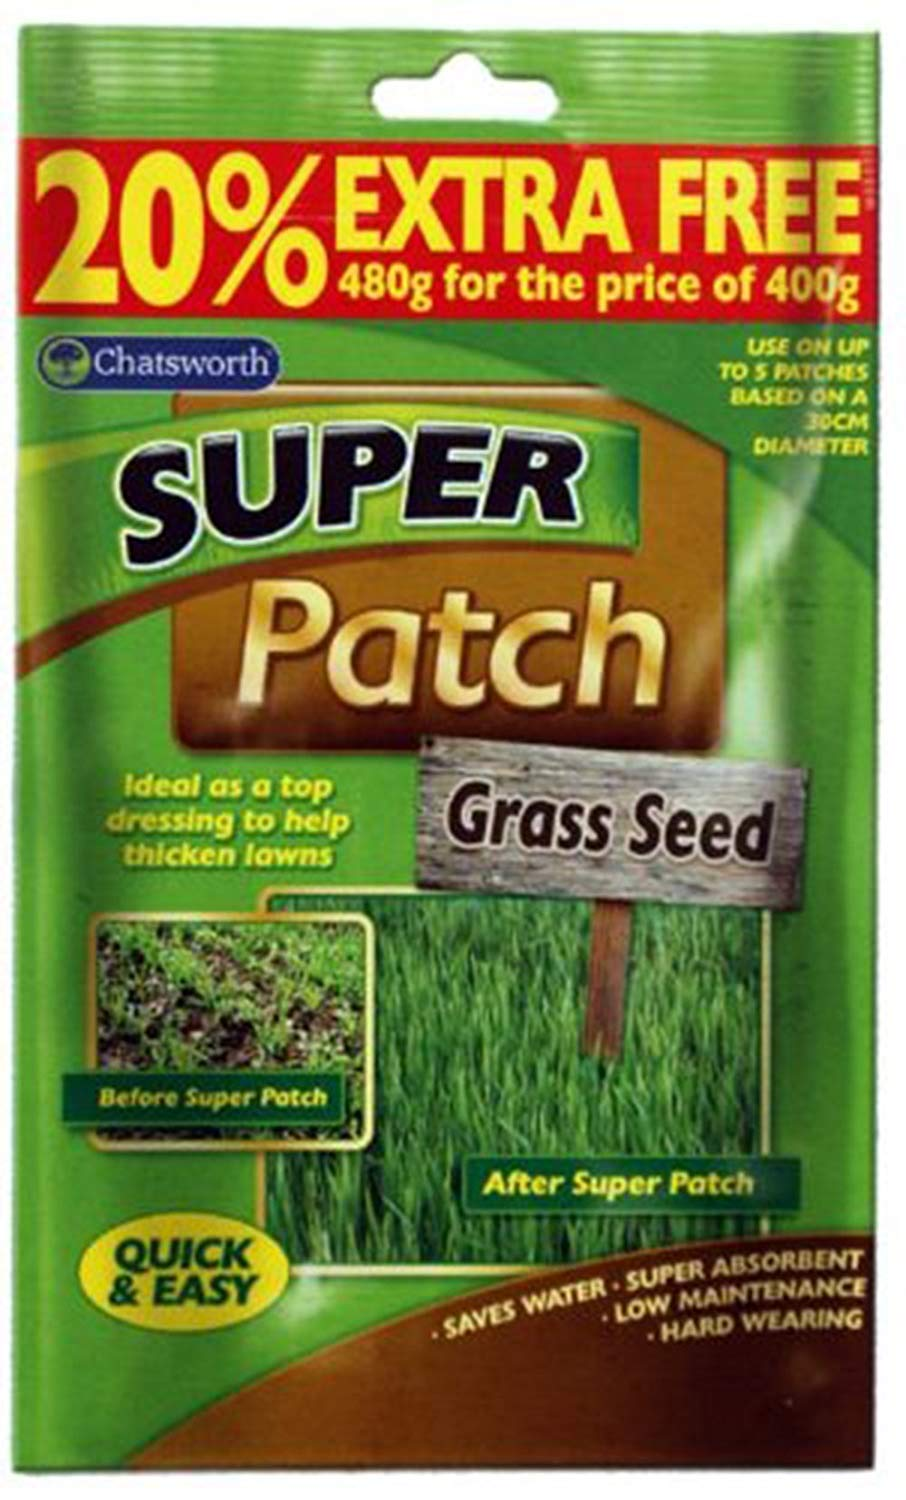 Chatsworth 4 x SUPER PATCH GRASS SEED Thickens Garden Lawn 480g Pack